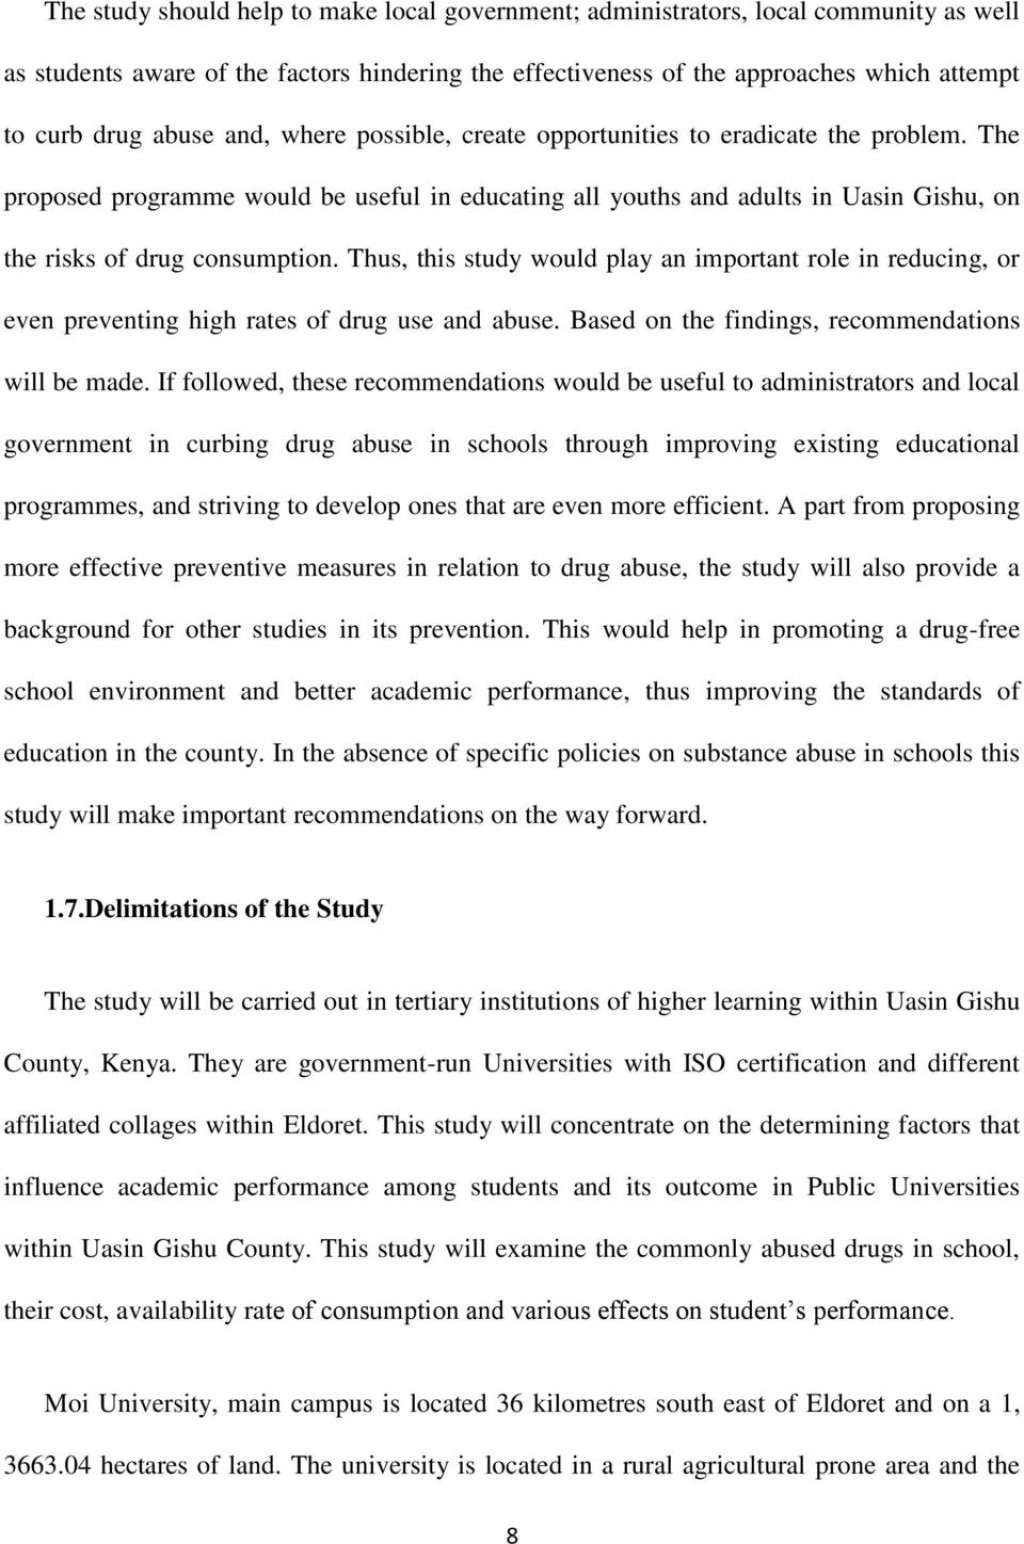 002 Drug Addiction Essay Drugs Essays Topics Abuse College Pa In Students Stunning Pdf Large